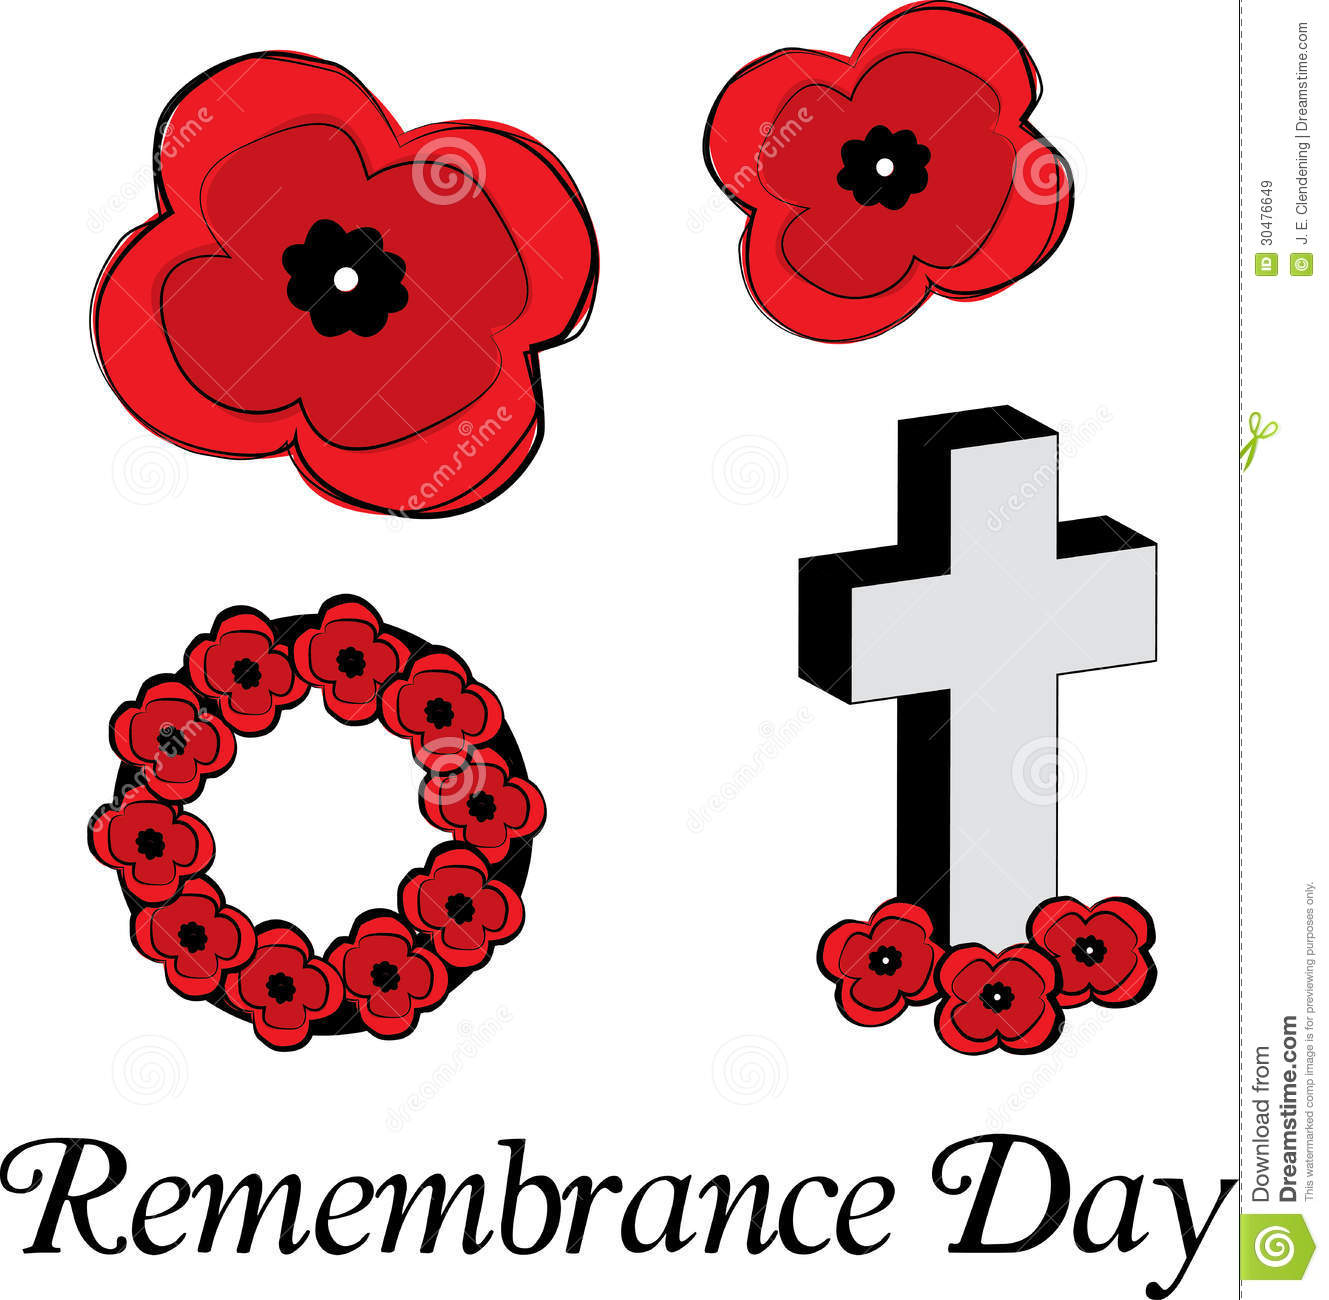 Remembrance Day Poppies Stock Vector Illustration Of